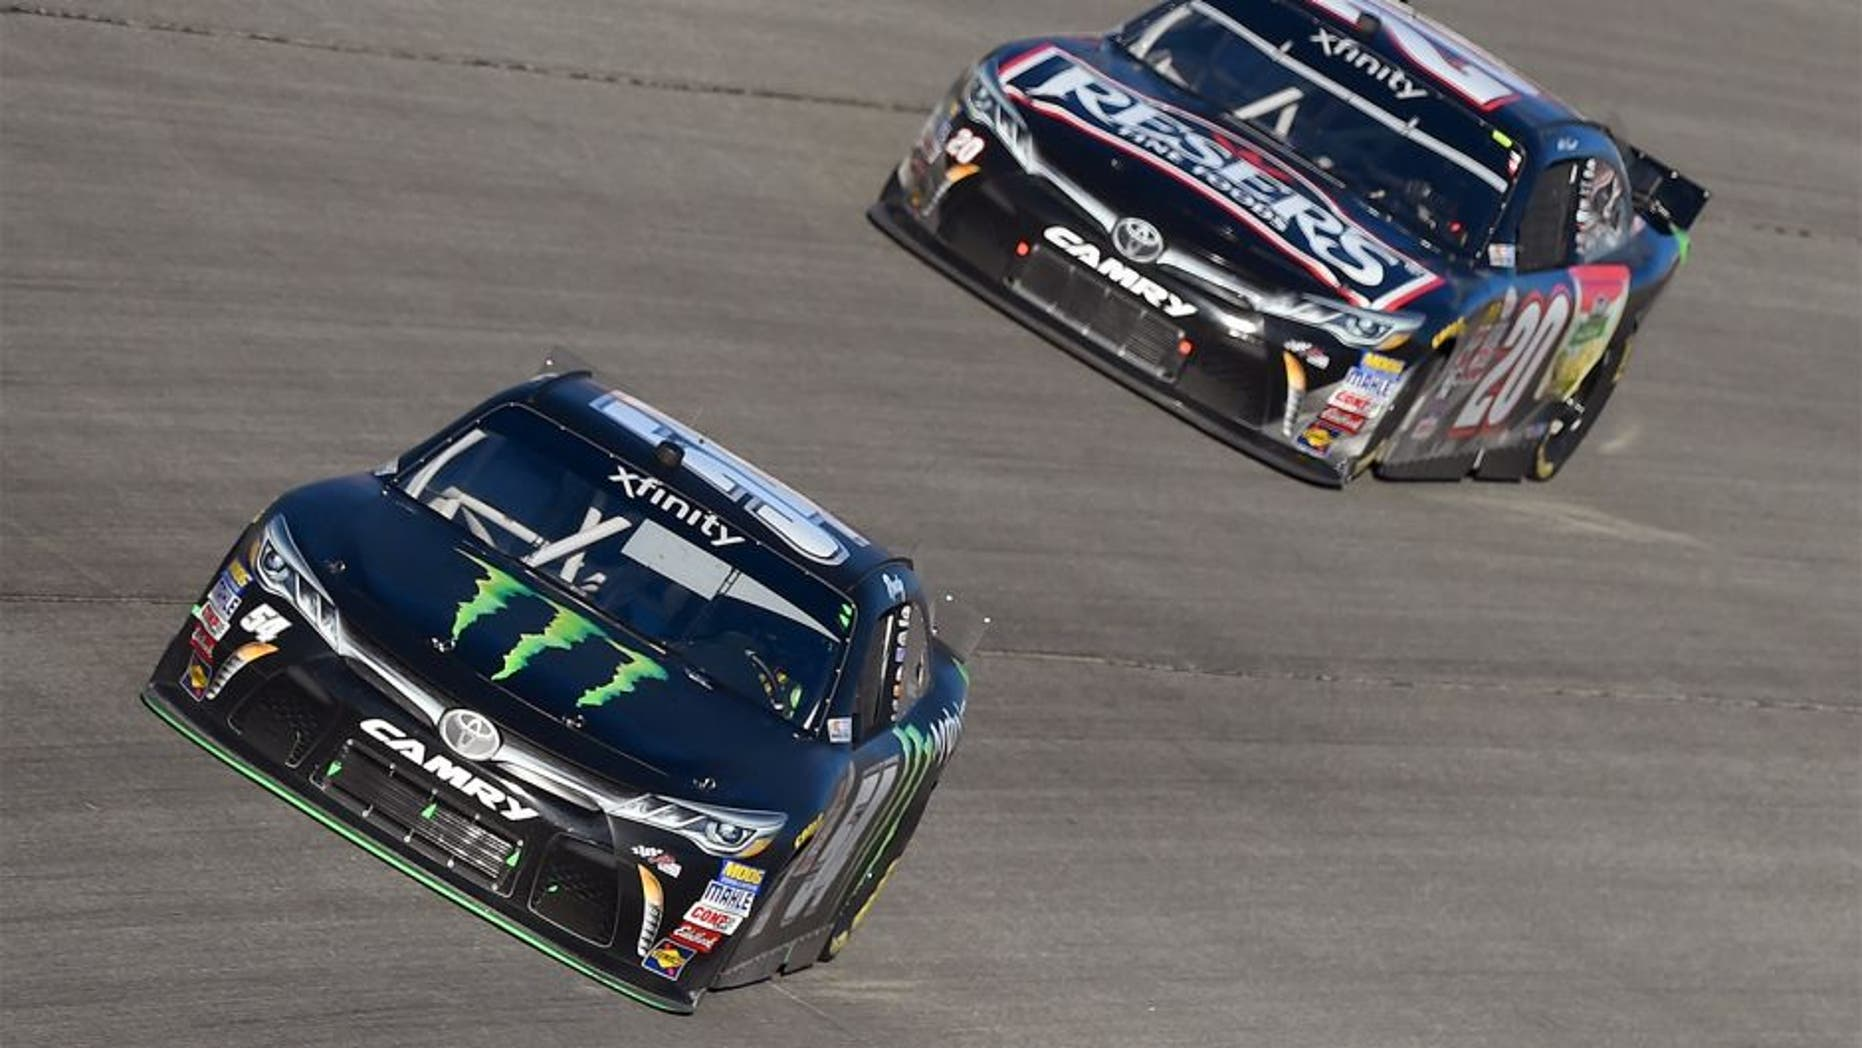 JOLIET, IL - SEPTEMBER 19: Kyle Busch, driver of the #54 Monster Energy Toyota, leads Matt Kenseth, driver of the #20 Reser's Main Street Toyota, during the NASCAR XFINITY Series FURIOUS 7 300 at Chicagoland Speedway on September 19, 2015 in Joliet, Illinois. (Photo by Josh Hedges/Getty Images)